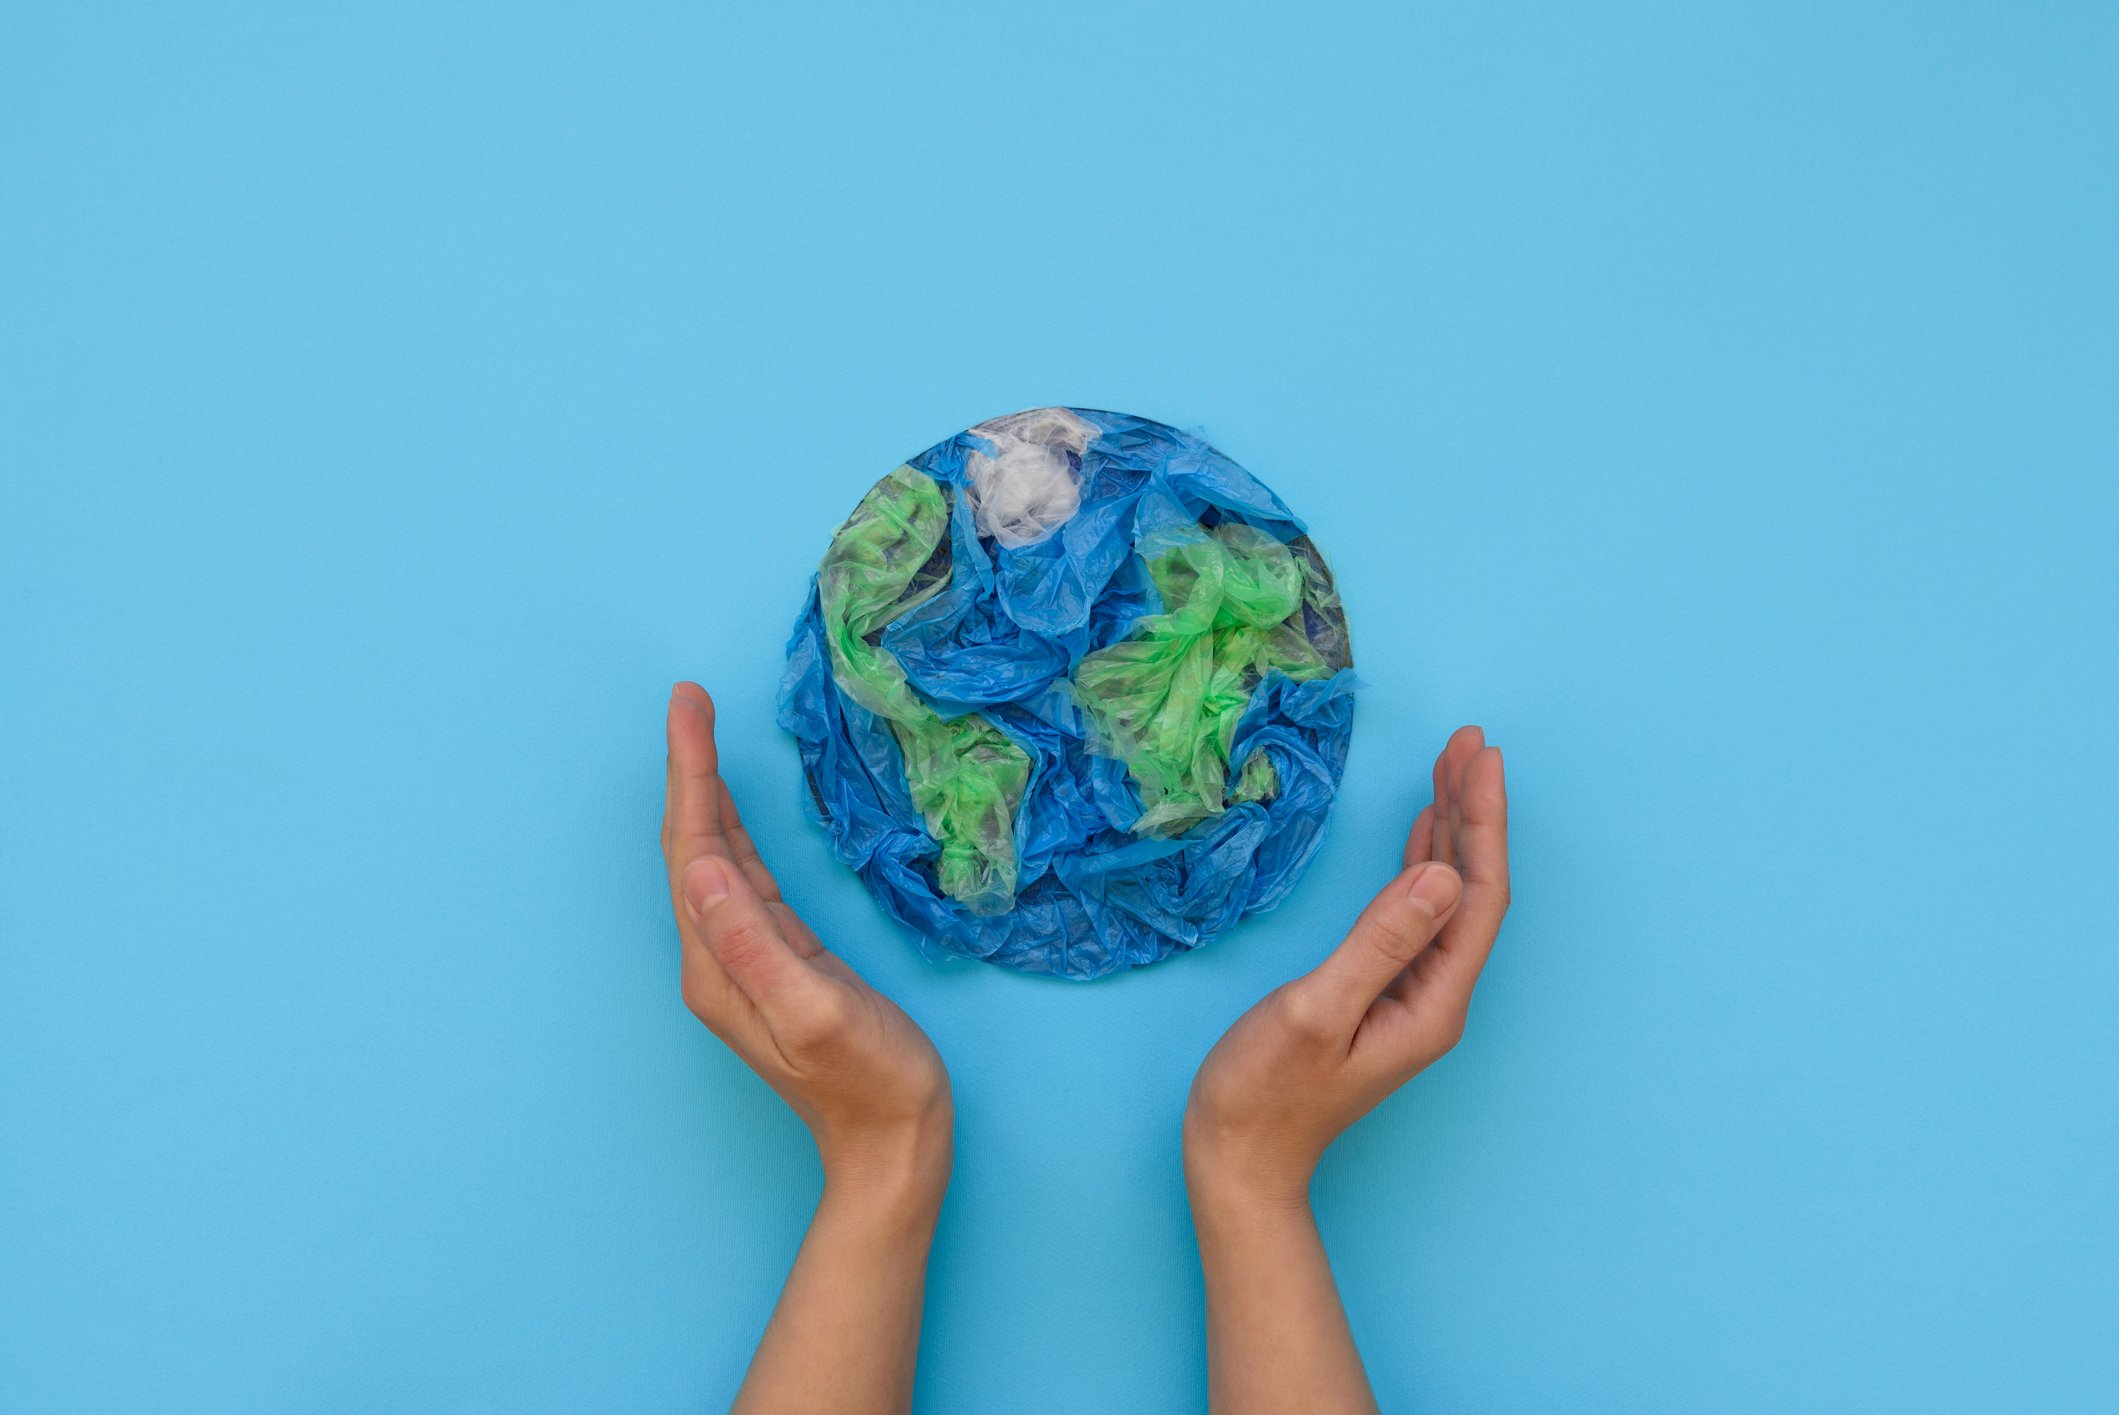 Who Actually Carries the Burden When Making a Sustainable World?